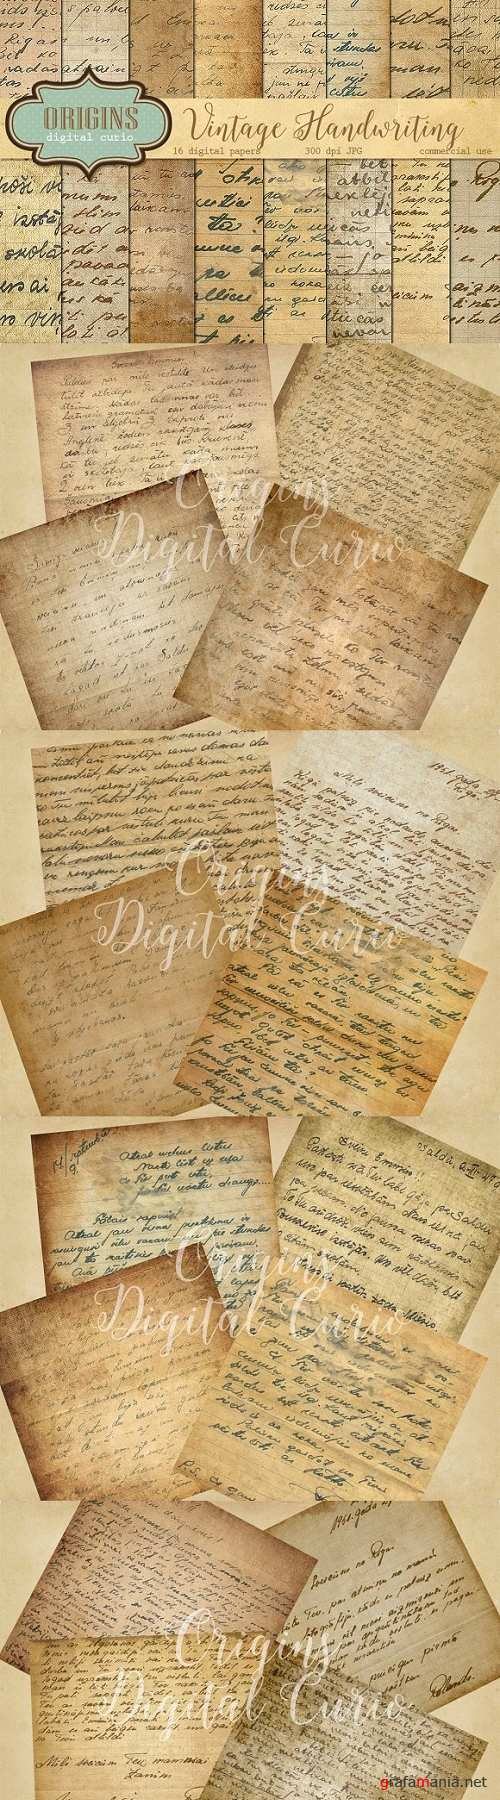 Vintage Handwriting Digital Paper - 402417